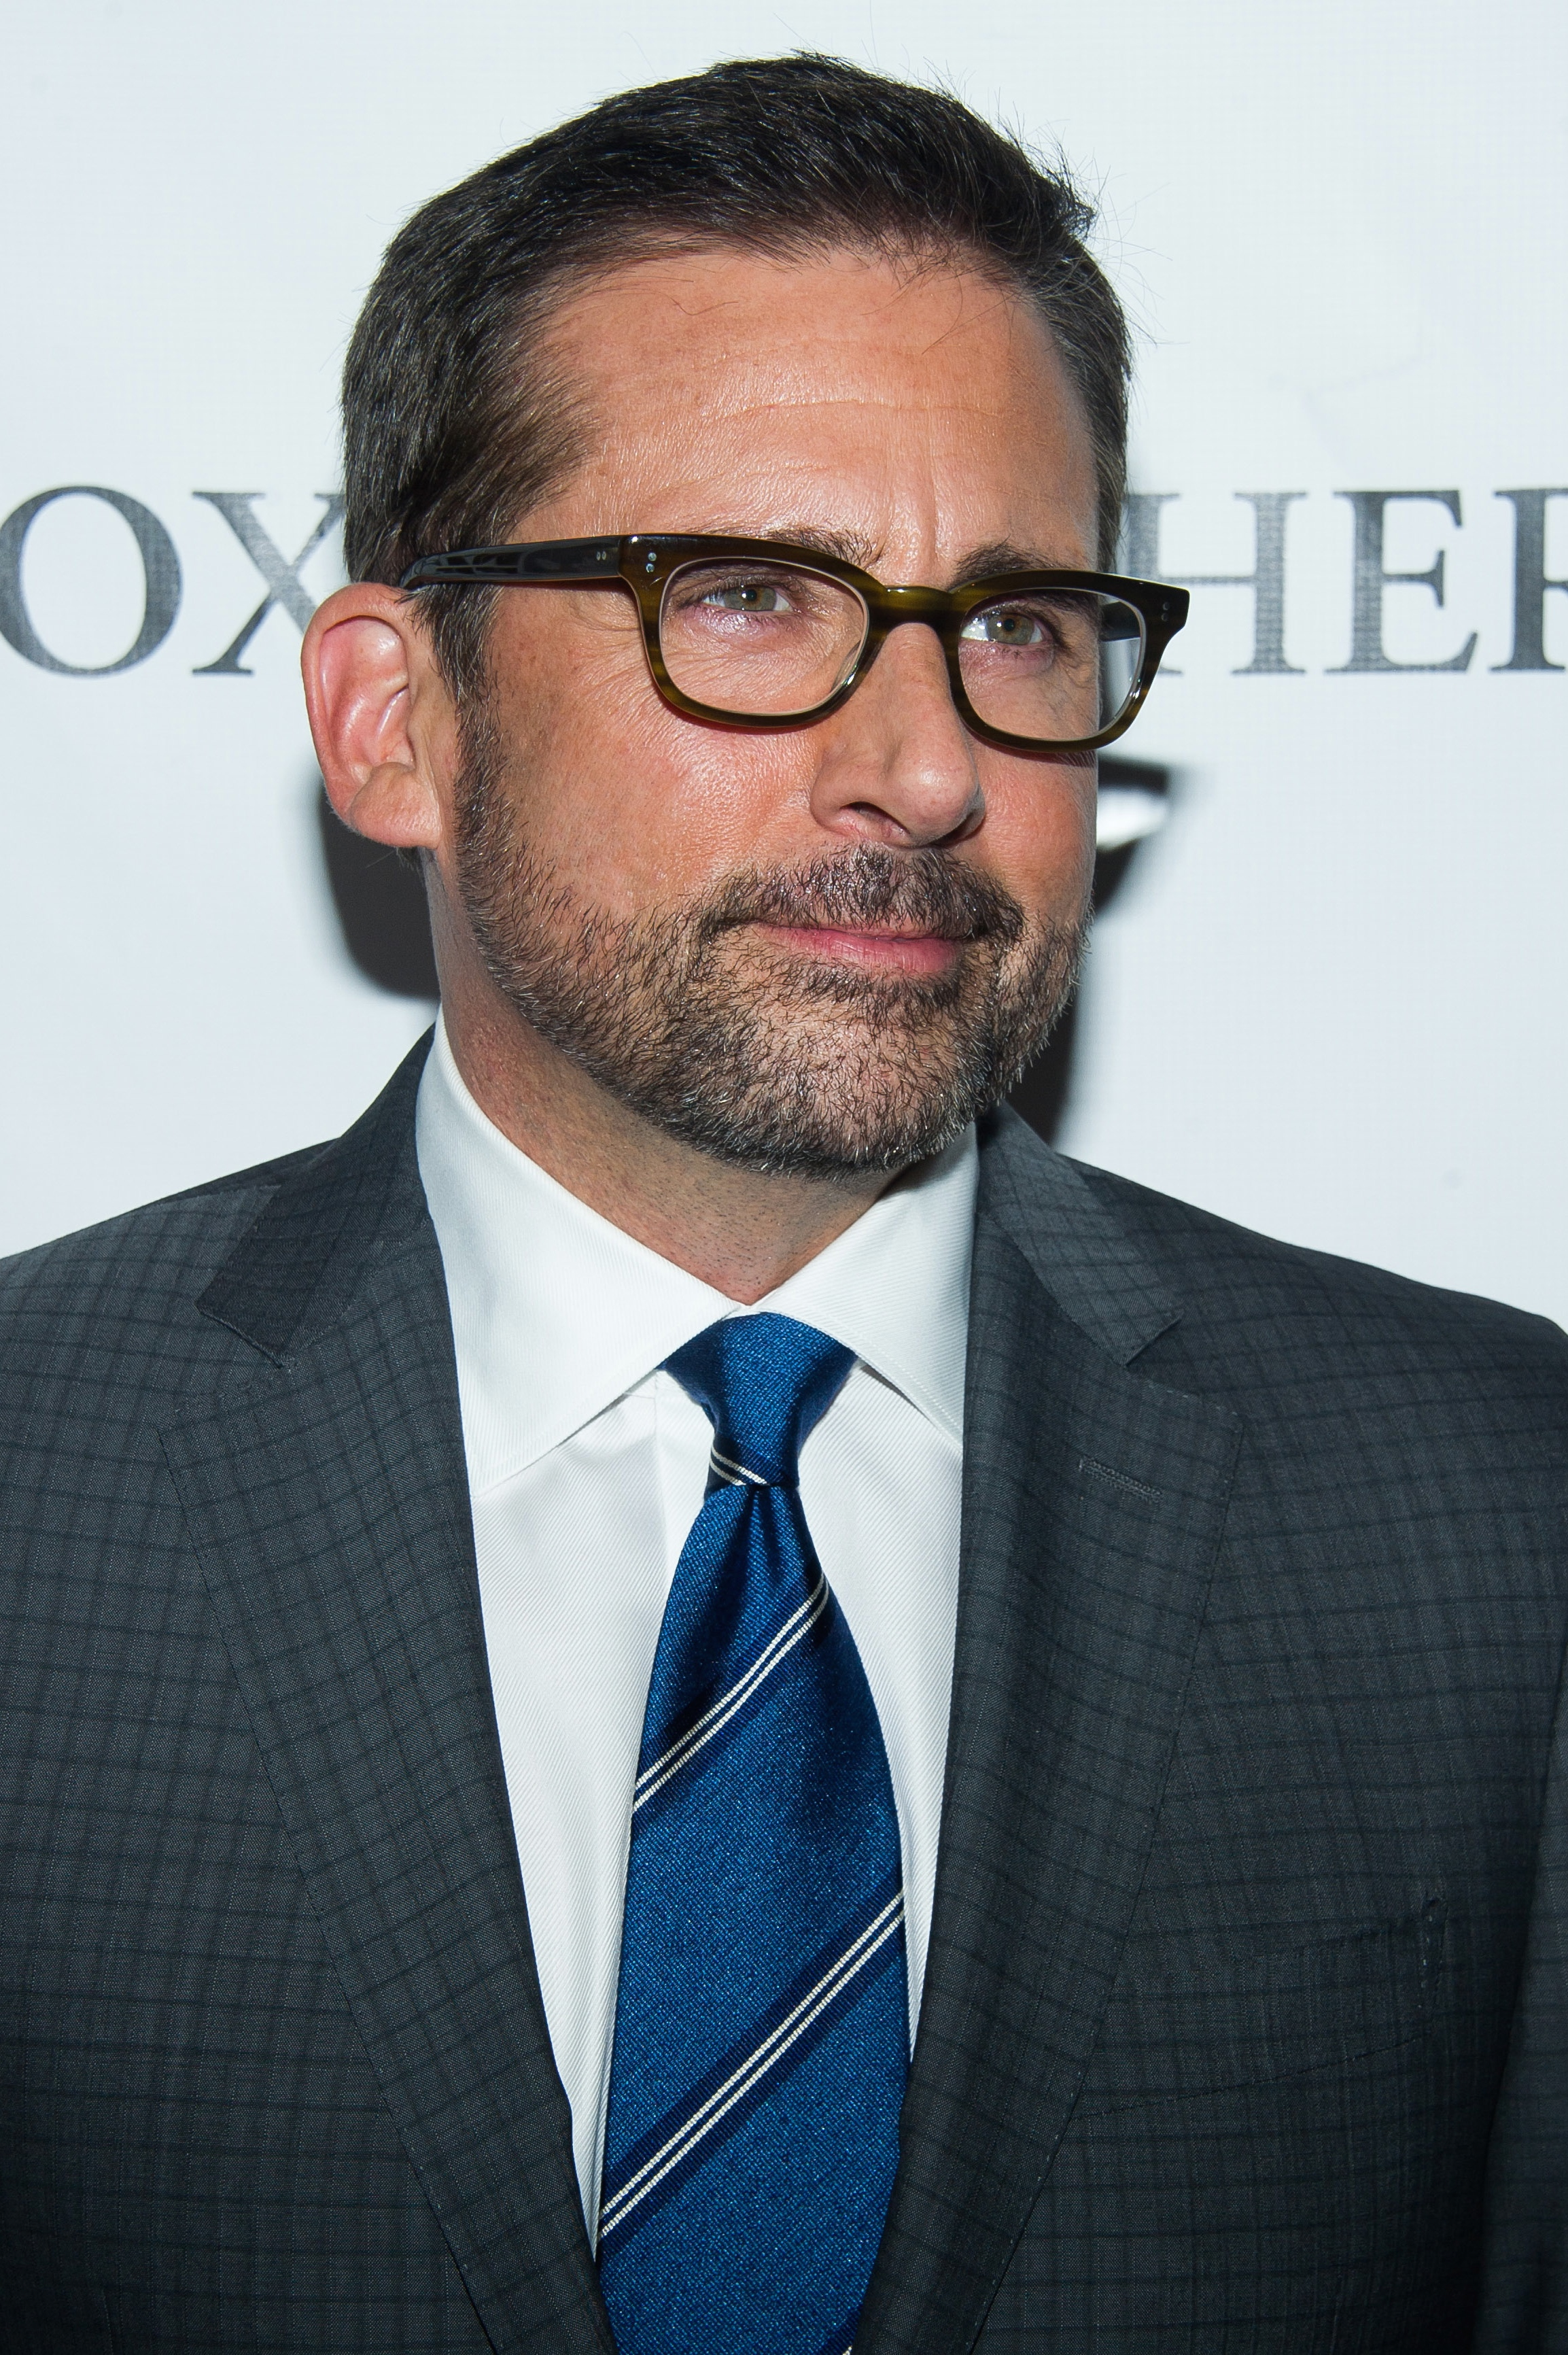 Steve Carell at NYFF 'Foxcatcher' Screening - P 2014